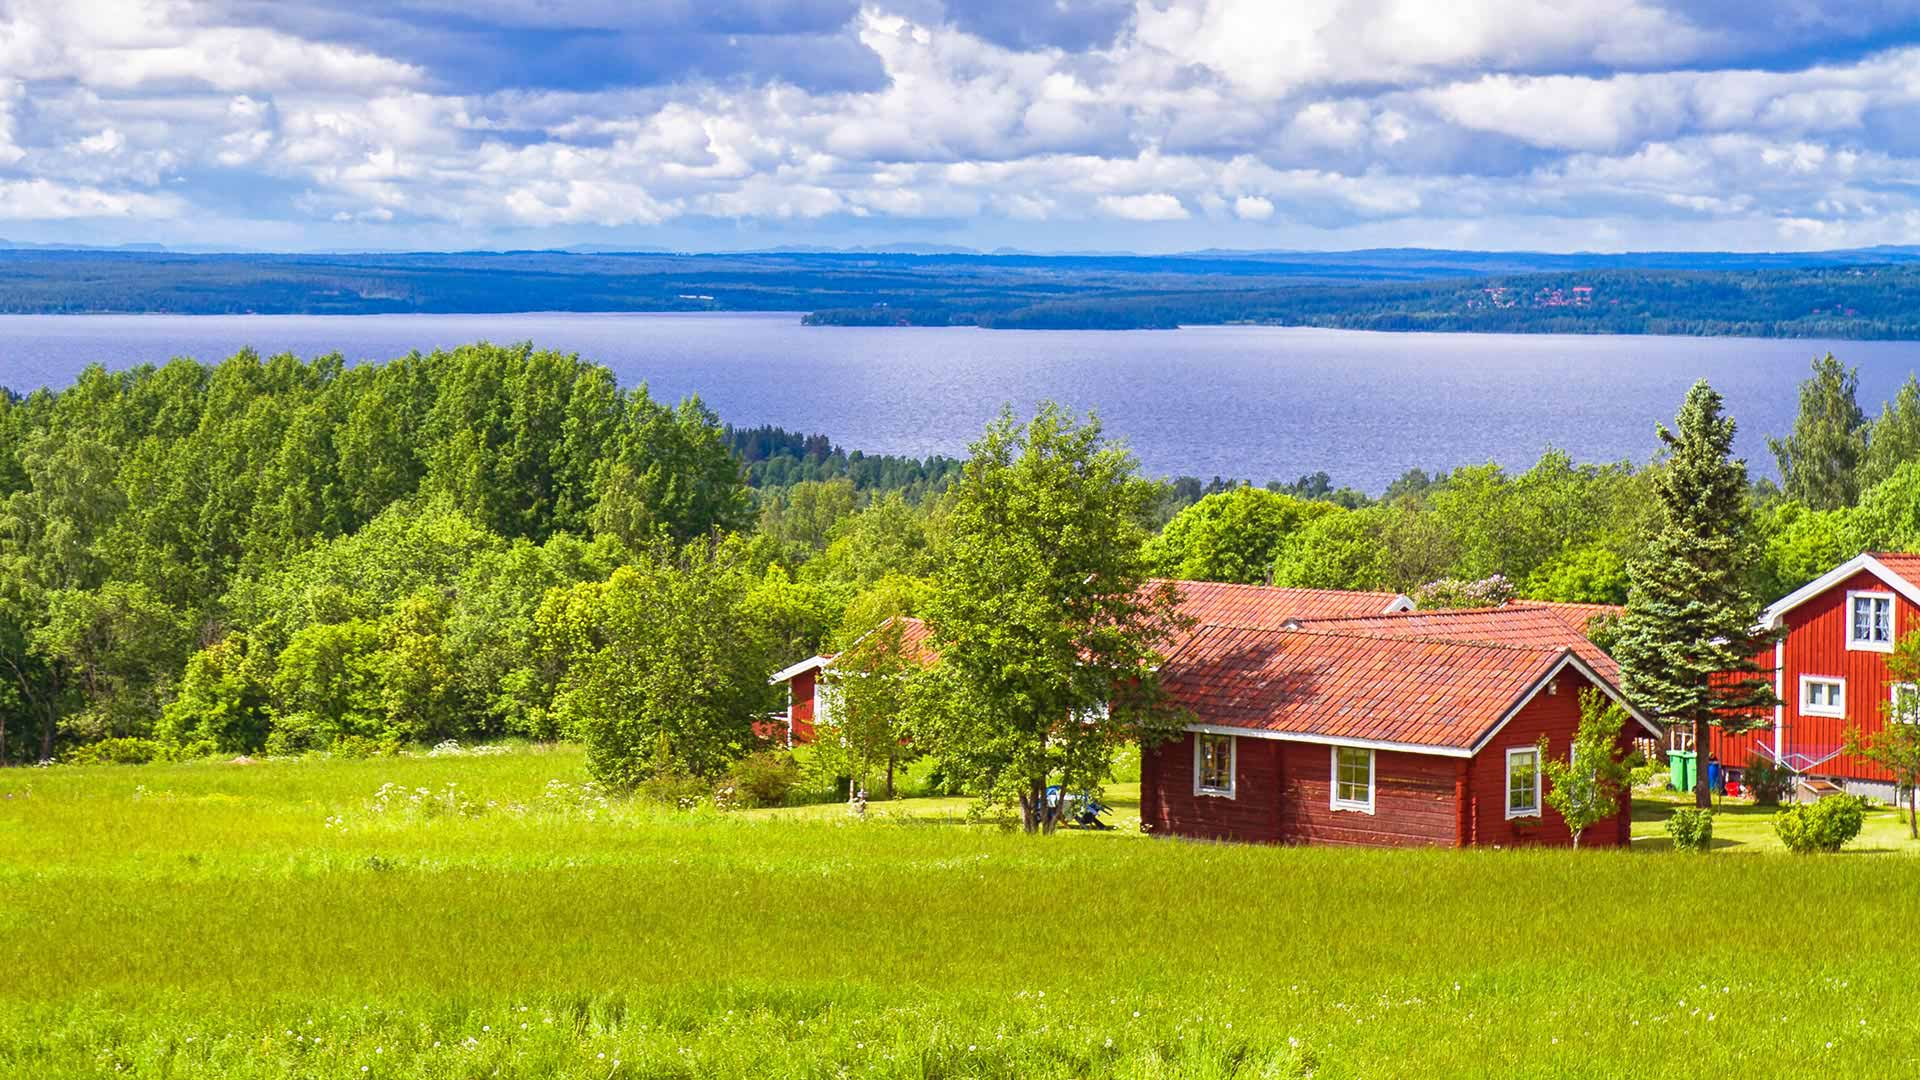 swedish sweden countryside country nature nordic natural travel scenery scandinavian europe gothenburg scenary visitor sanka bharat articles nordicvisitor